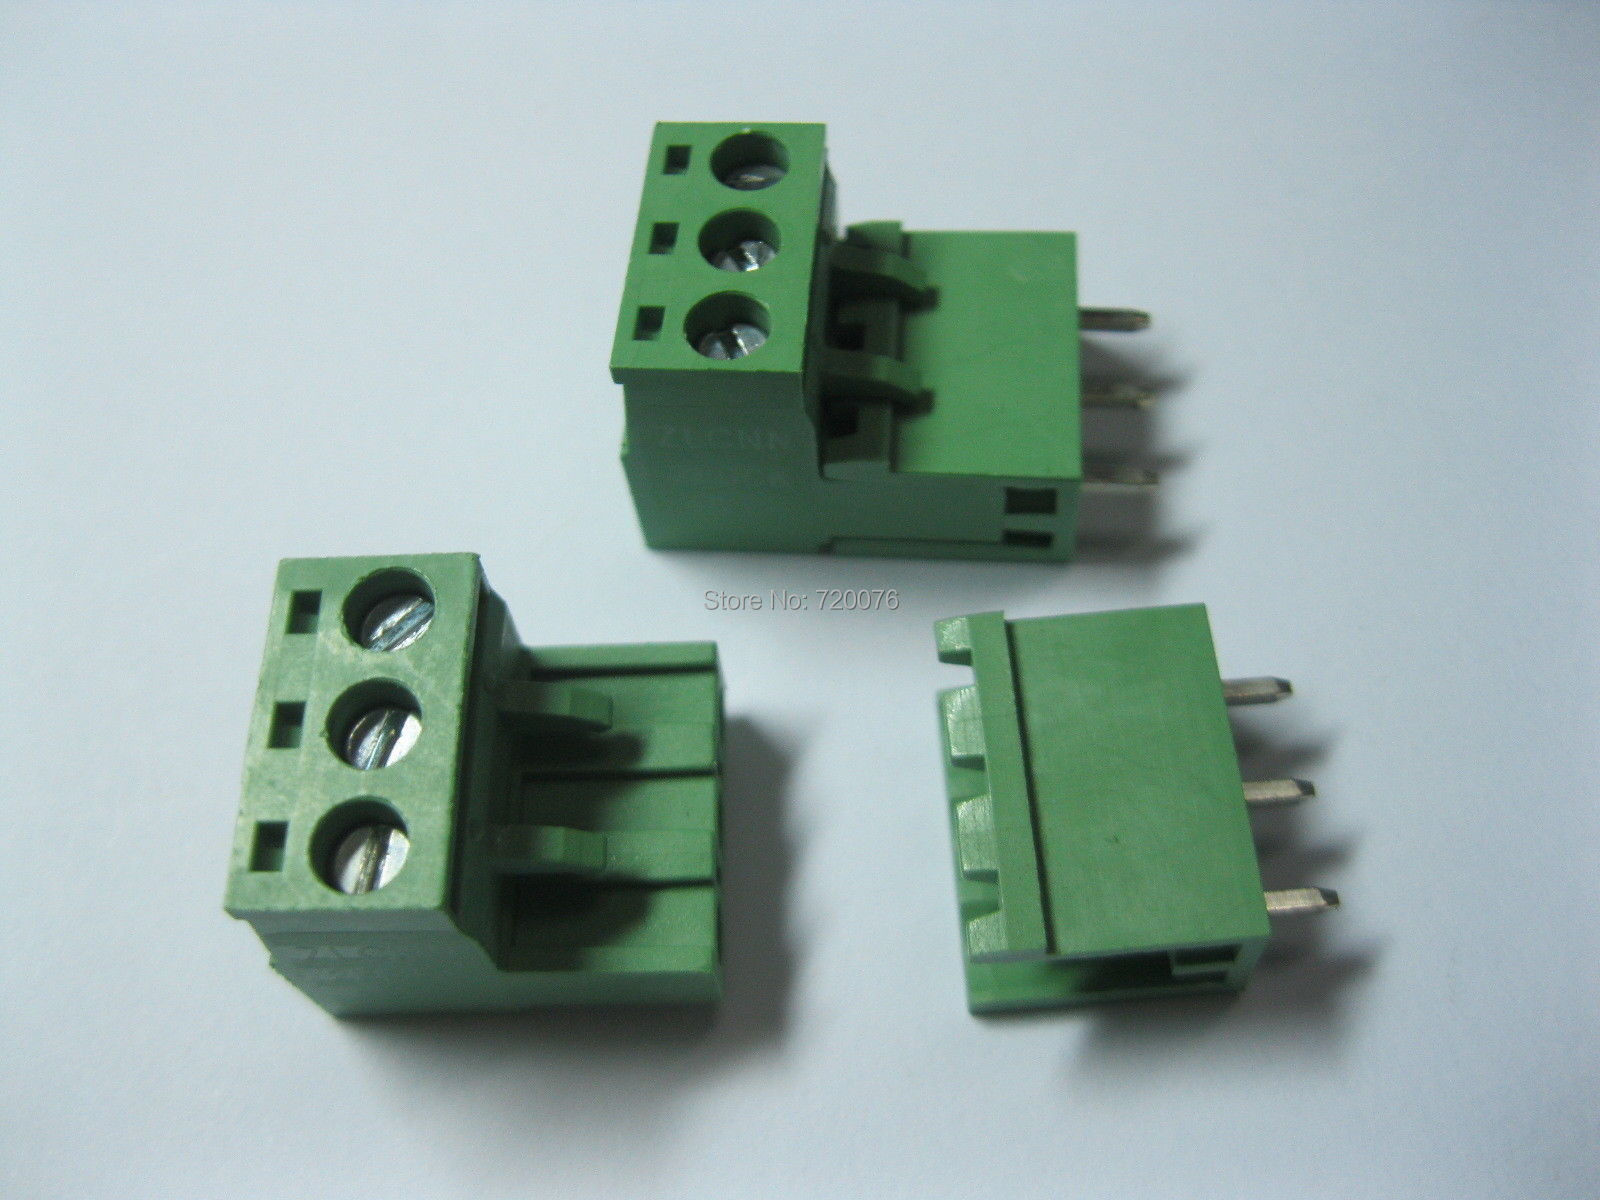 цена на 100 pcs Green 3 pin 5.08mm Screw Terminal Block Connector Pluggable Type